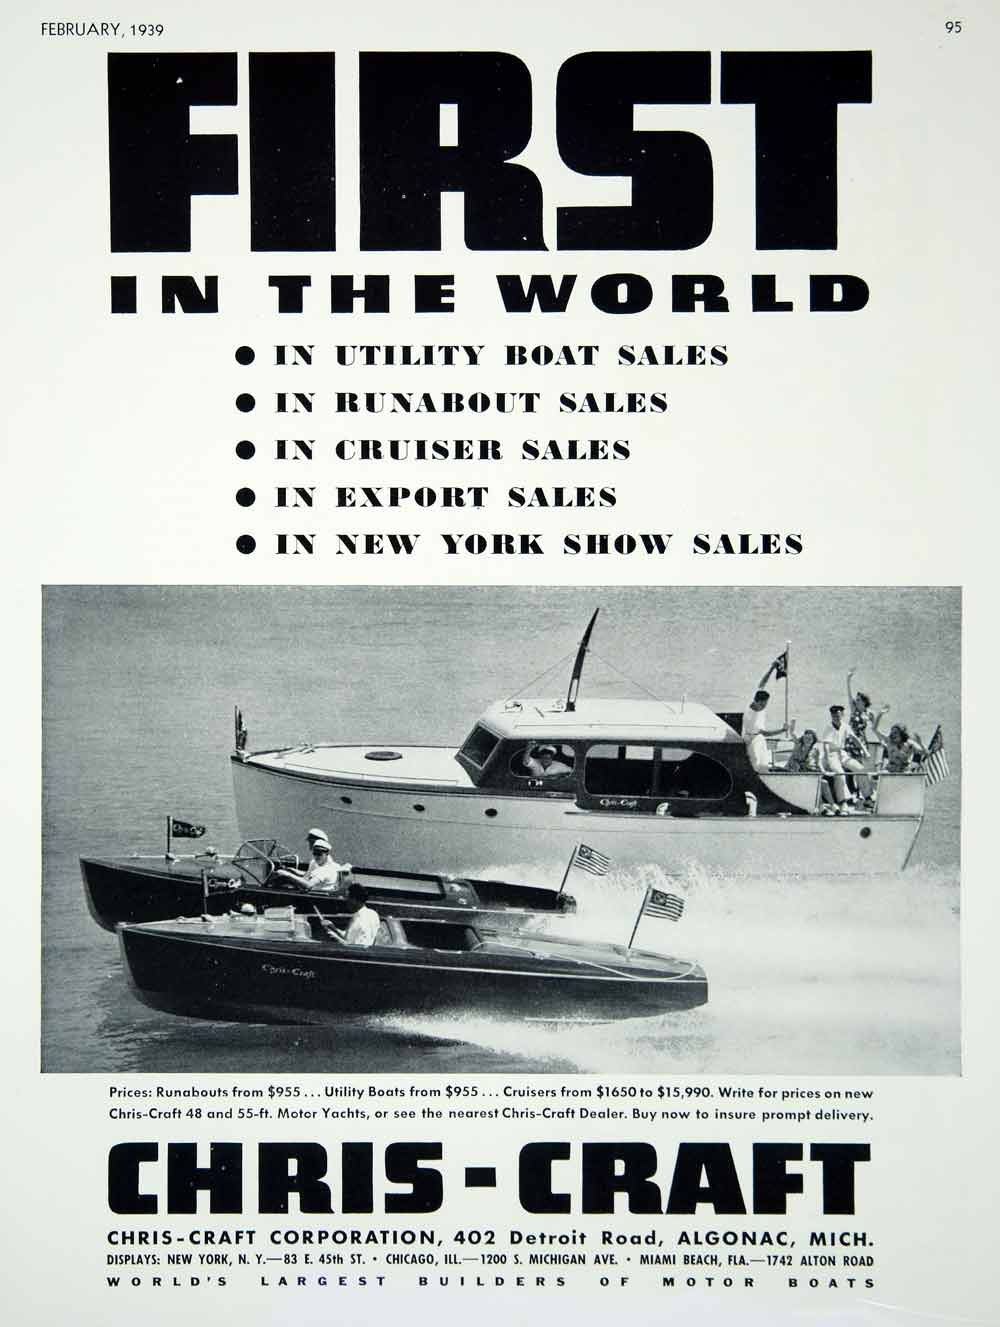 Vintage Advertising Art Tagged Boats Marine Page 3 Period Paper Chris Craft Model A Engine Diagram 1939 Ad Utility Runabouts Cruisers Motor Yachts Algonac Mich